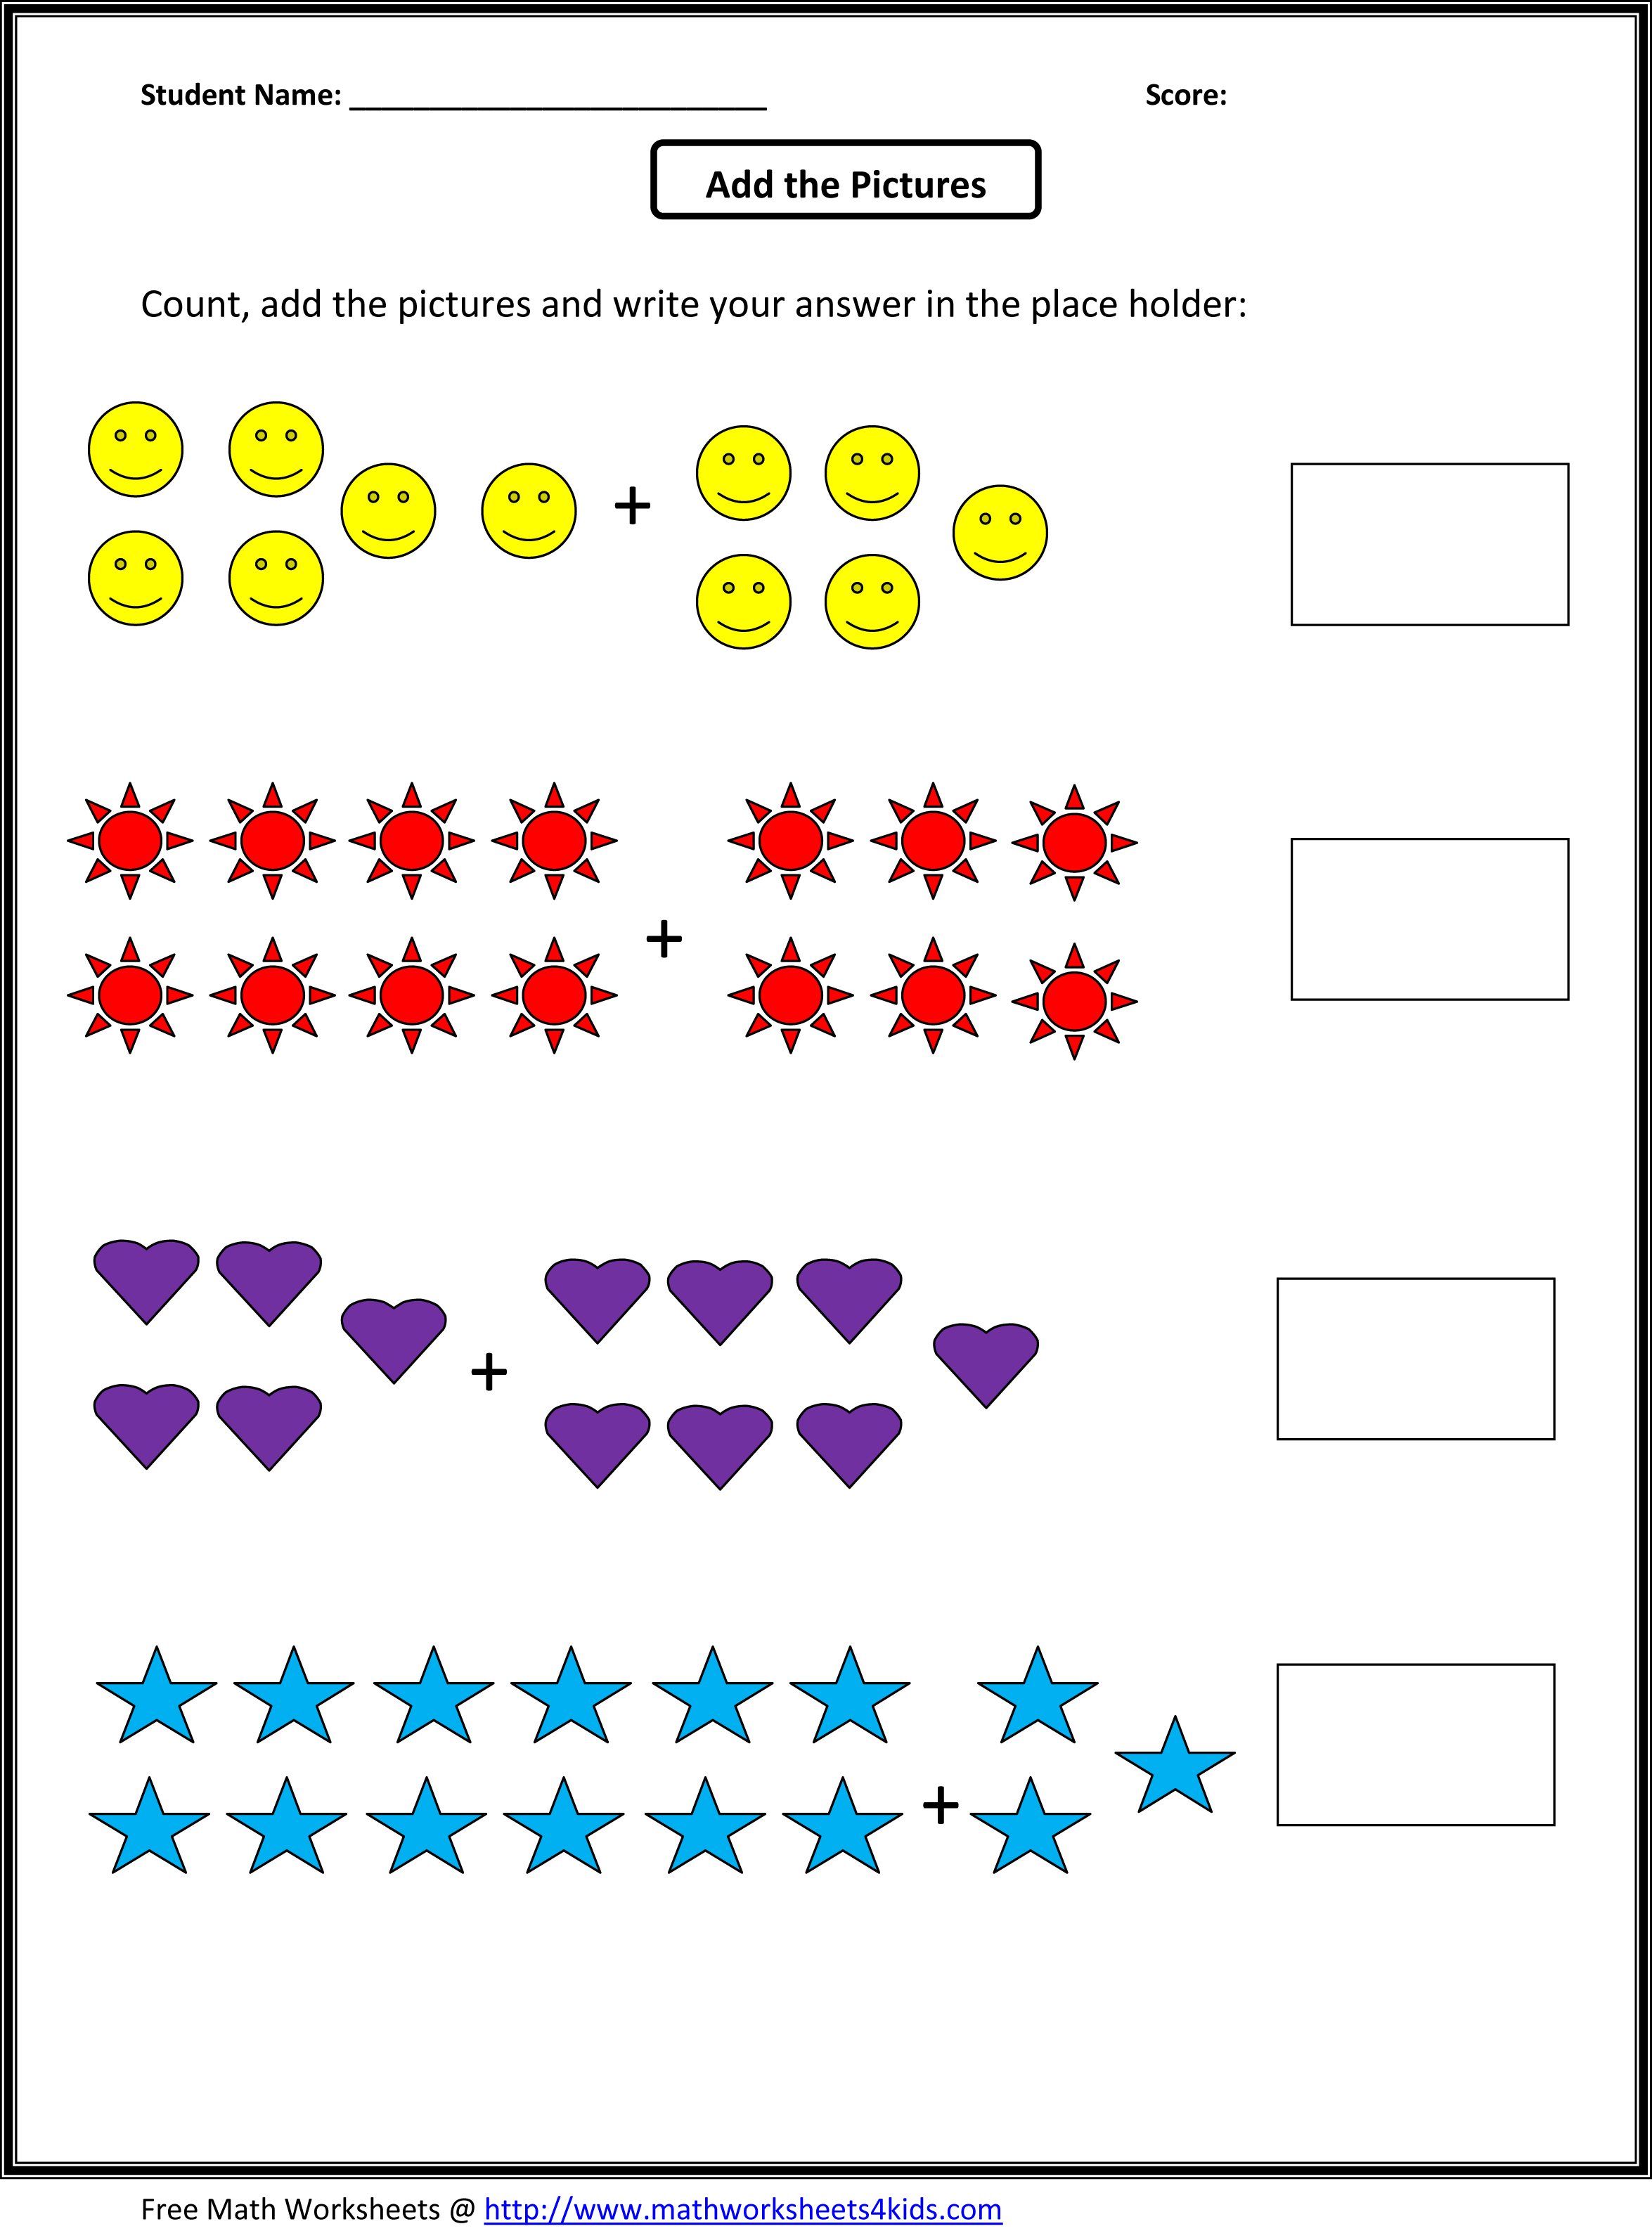 Weirdmailus  Fascinating Grade  Maths Worksheet  Reocurent With Fascinating Math Worksheets For St Grade Free  Reocurent With Divine Free Math Worksheets For Nd Graders Also Declarative Interrogative Imperative Exclamatory Worksheets In Addition Math Worksheet Grade  And Excel Worksheet Vs Workbook As Well As Washington State Child Support Schedule Worksheets Additionally Point Of View Worksheets Th Grade From Reocurentcom With Weirdmailus  Fascinating Grade  Maths Worksheet  Reocurent With Divine Math Worksheets For St Grade Free  Reocurent And Fascinating Free Math Worksheets For Nd Graders Also Declarative Interrogative Imperative Exclamatory Worksheets In Addition Math Worksheet Grade  From Reocurentcom